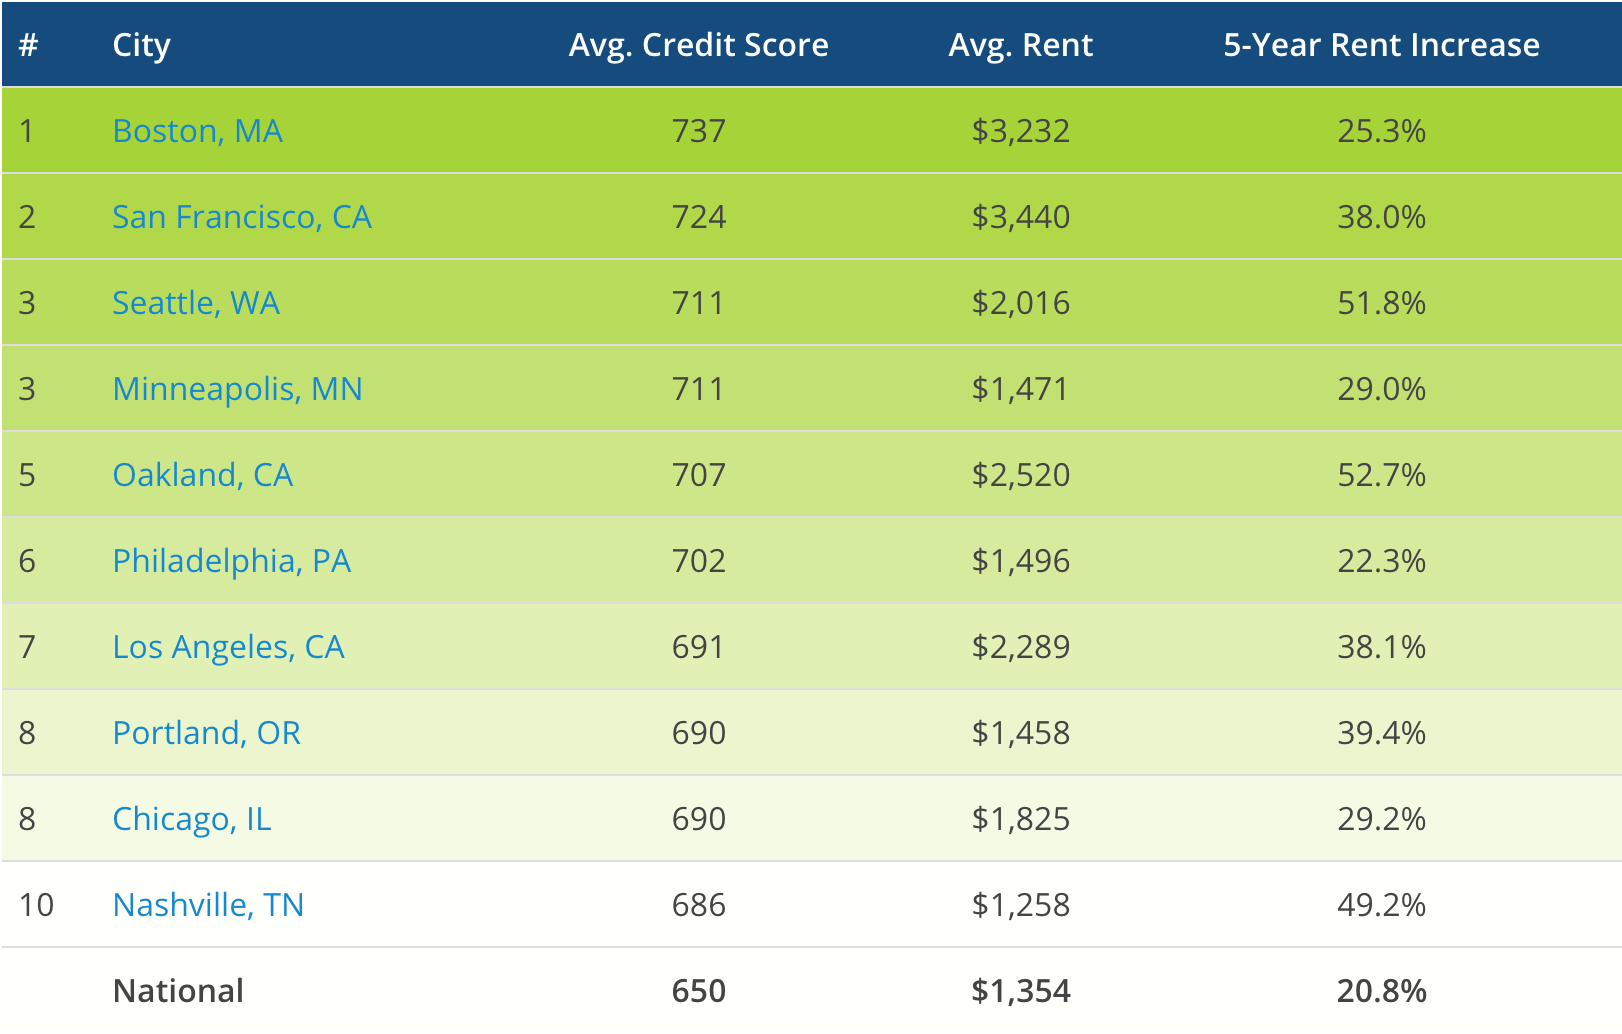 Low credit score? In some markets you'll qualify for a mortgage, but not for a lease